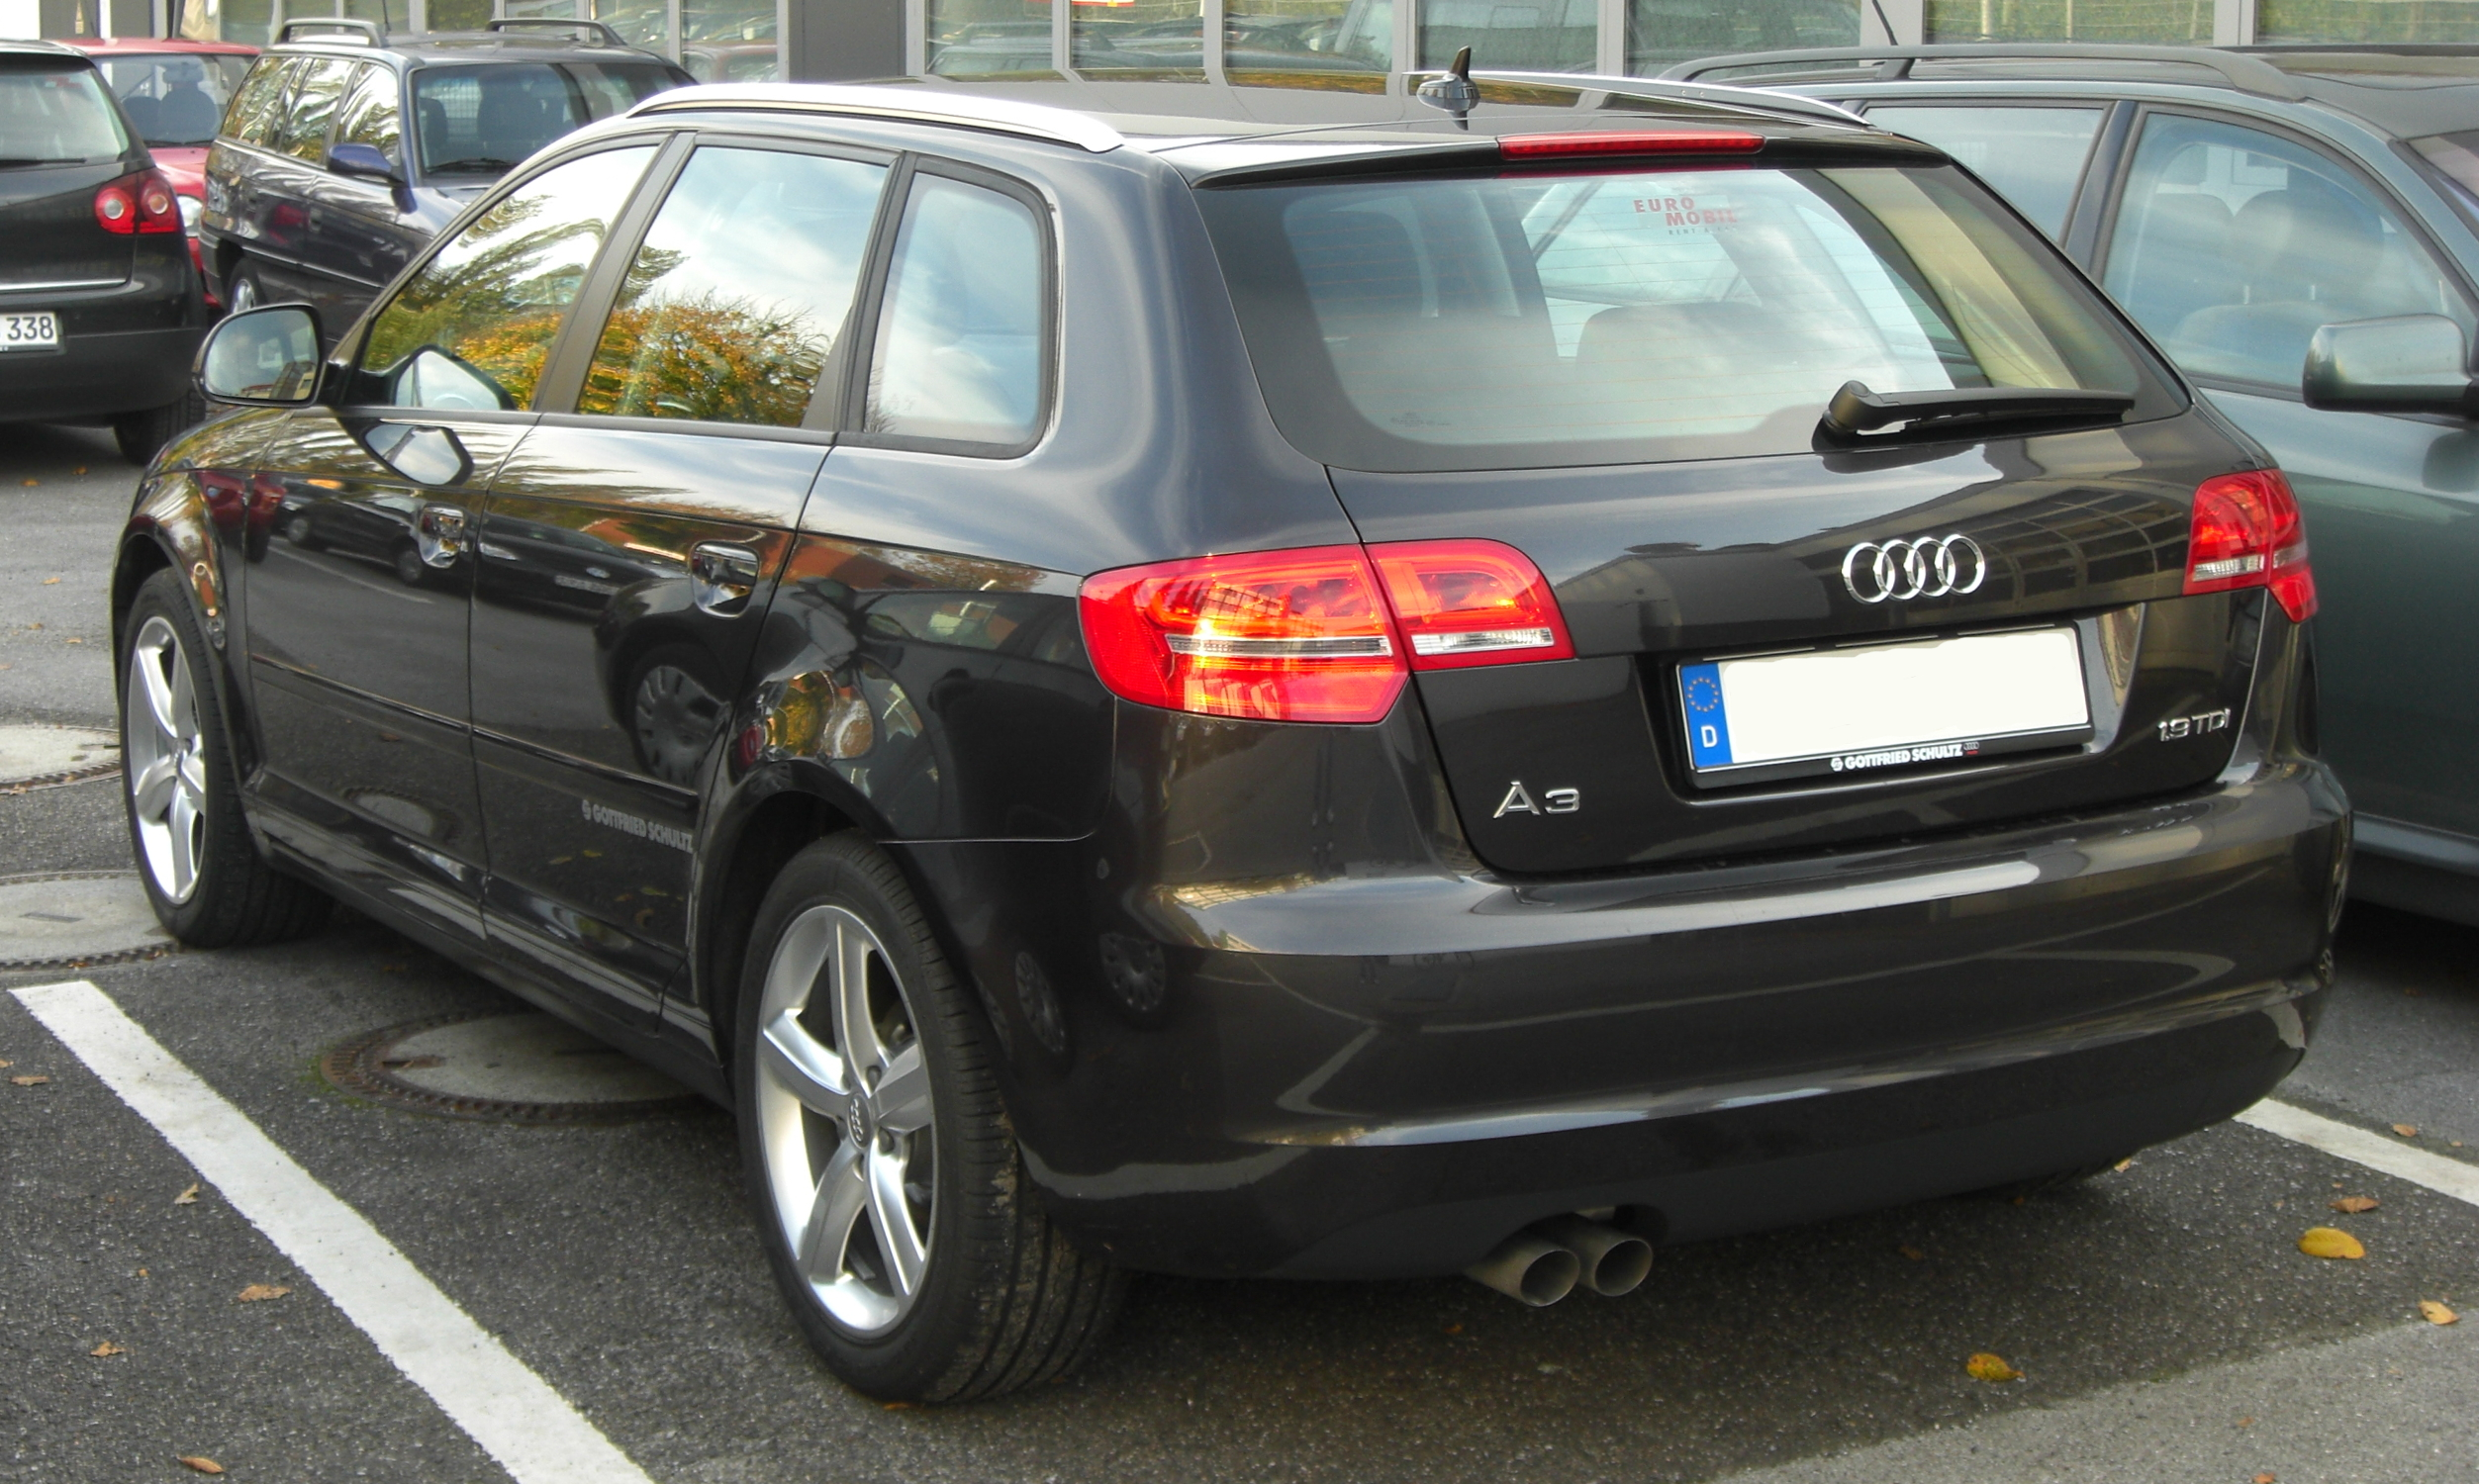 fichier audi a3 sportback 1 9 tdi ii facelift rear jpg wikip dia. Black Bedroom Furniture Sets. Home Design Ideas